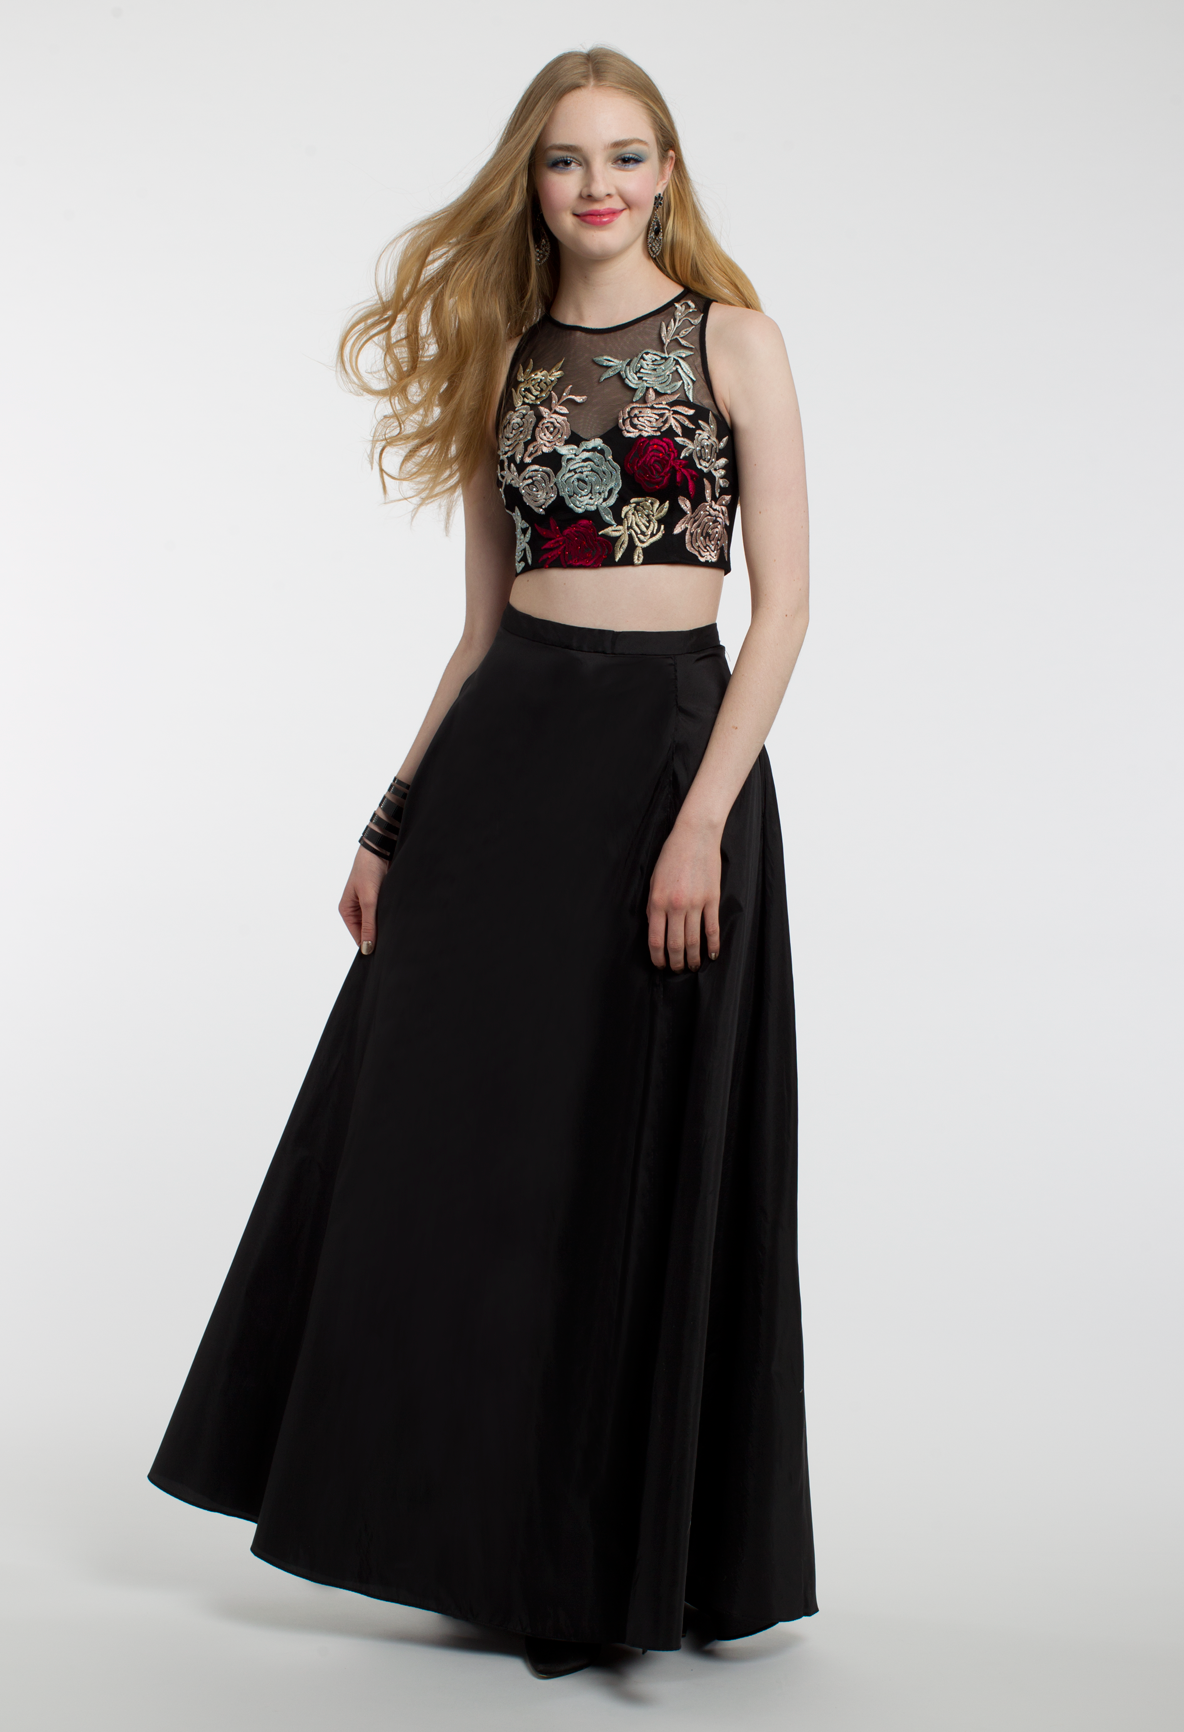 Say it with sheer in this exquisite formal evening gown the two